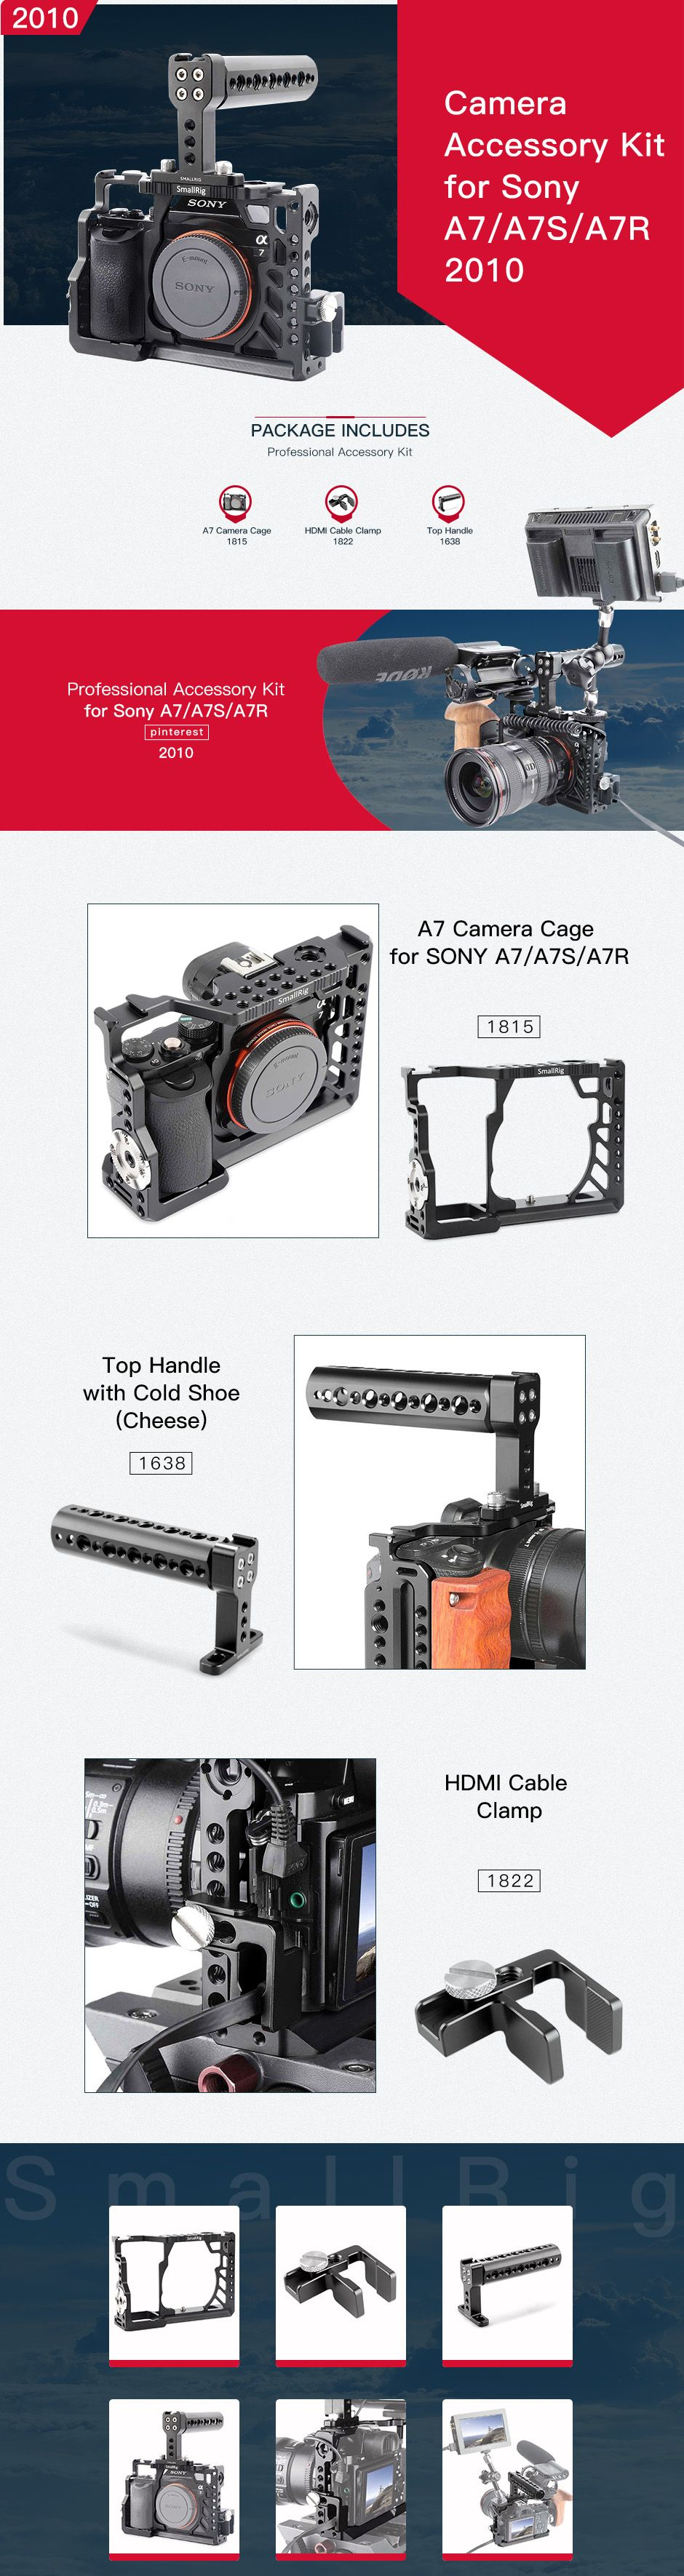 Sony A7 accessories Sony a7s rig a7s cage sony a7 cage sony